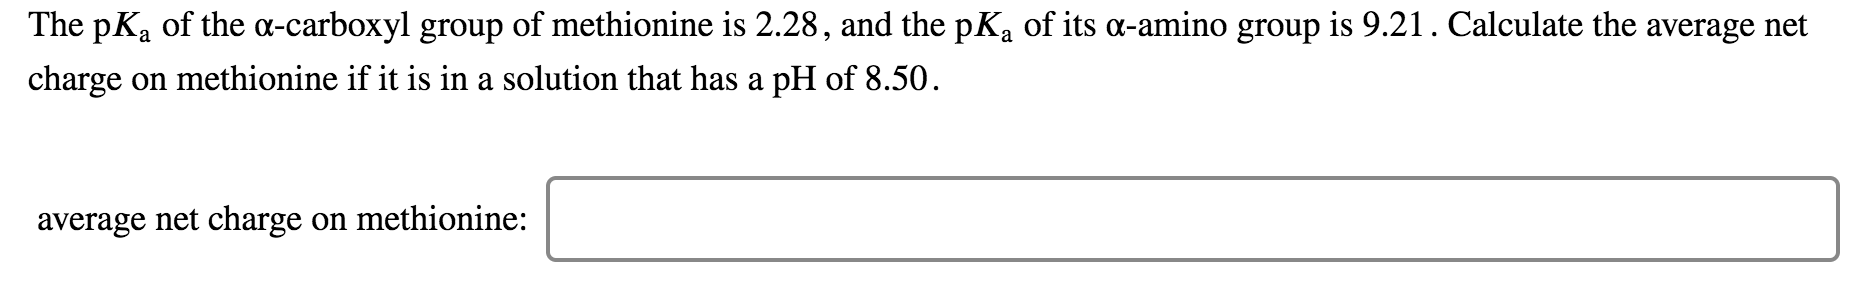 The pKa of the a-carboxyl group of methionine is 2.28, and the pKa of its a-amino group is 9.21. Calculate the average net charge on methionine if it is in a solution that has a pH of 8.50 average net charge on methionine: